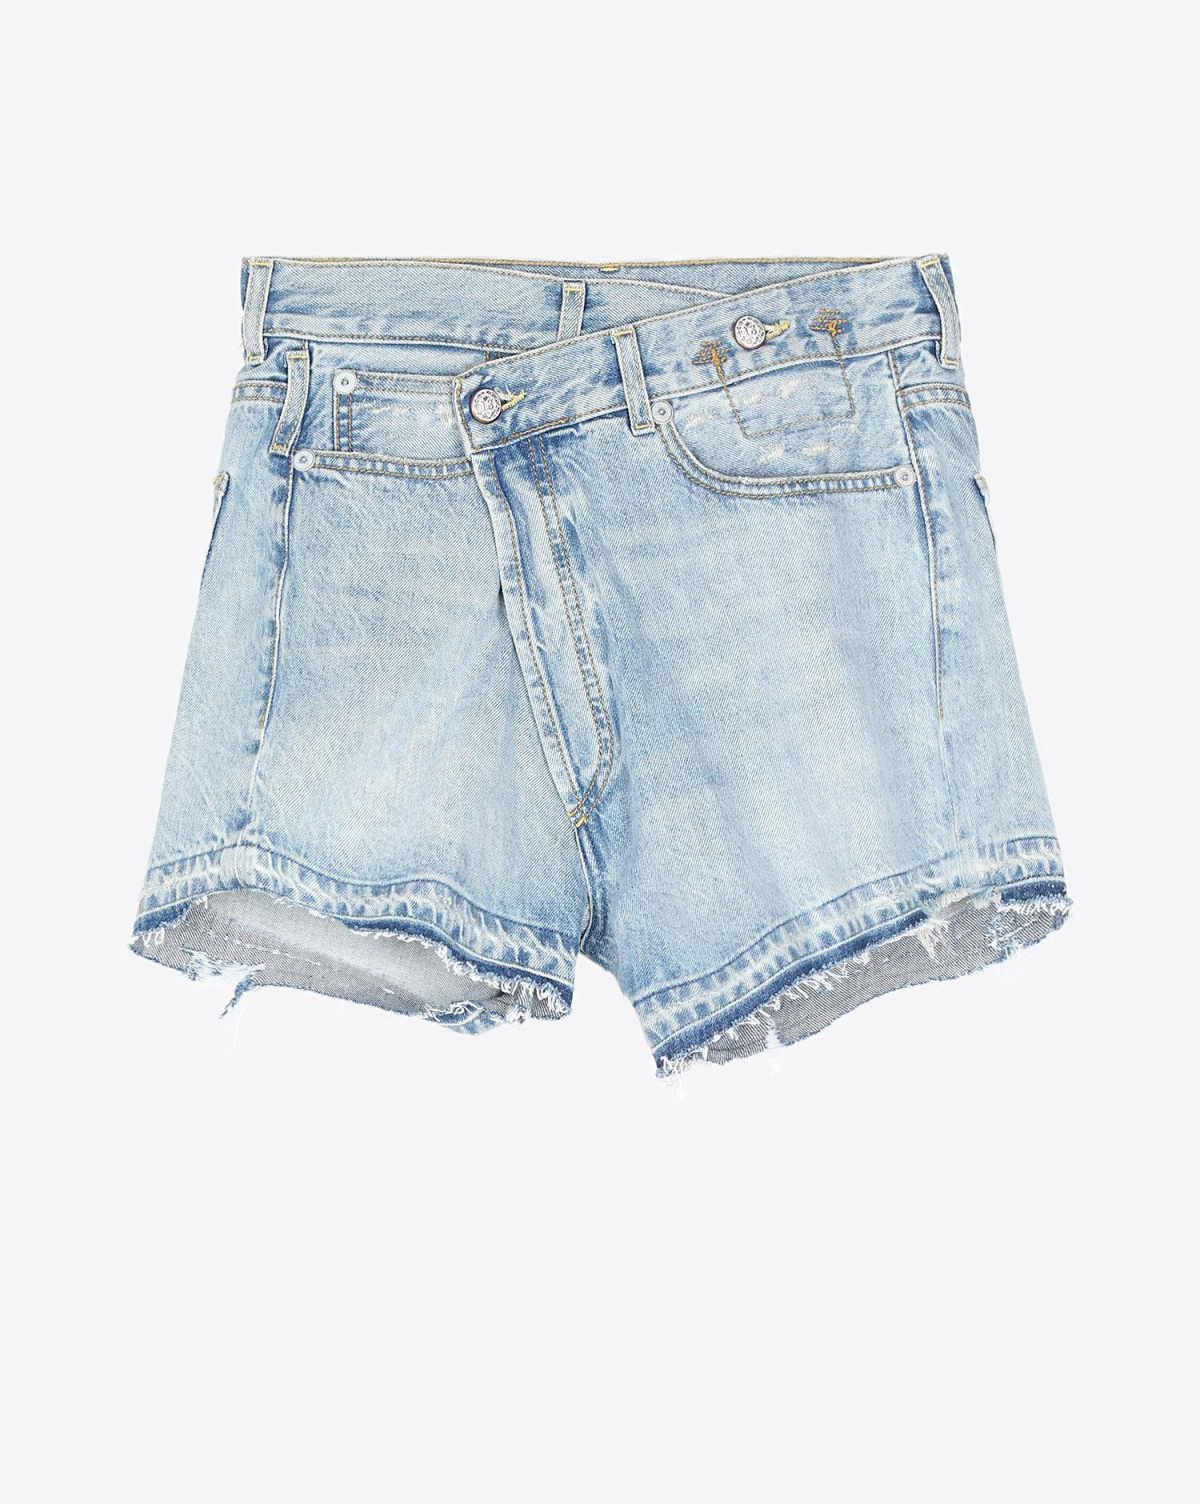 R13 Denim Permanent Crossover Short - Tilly W Let Down Hem